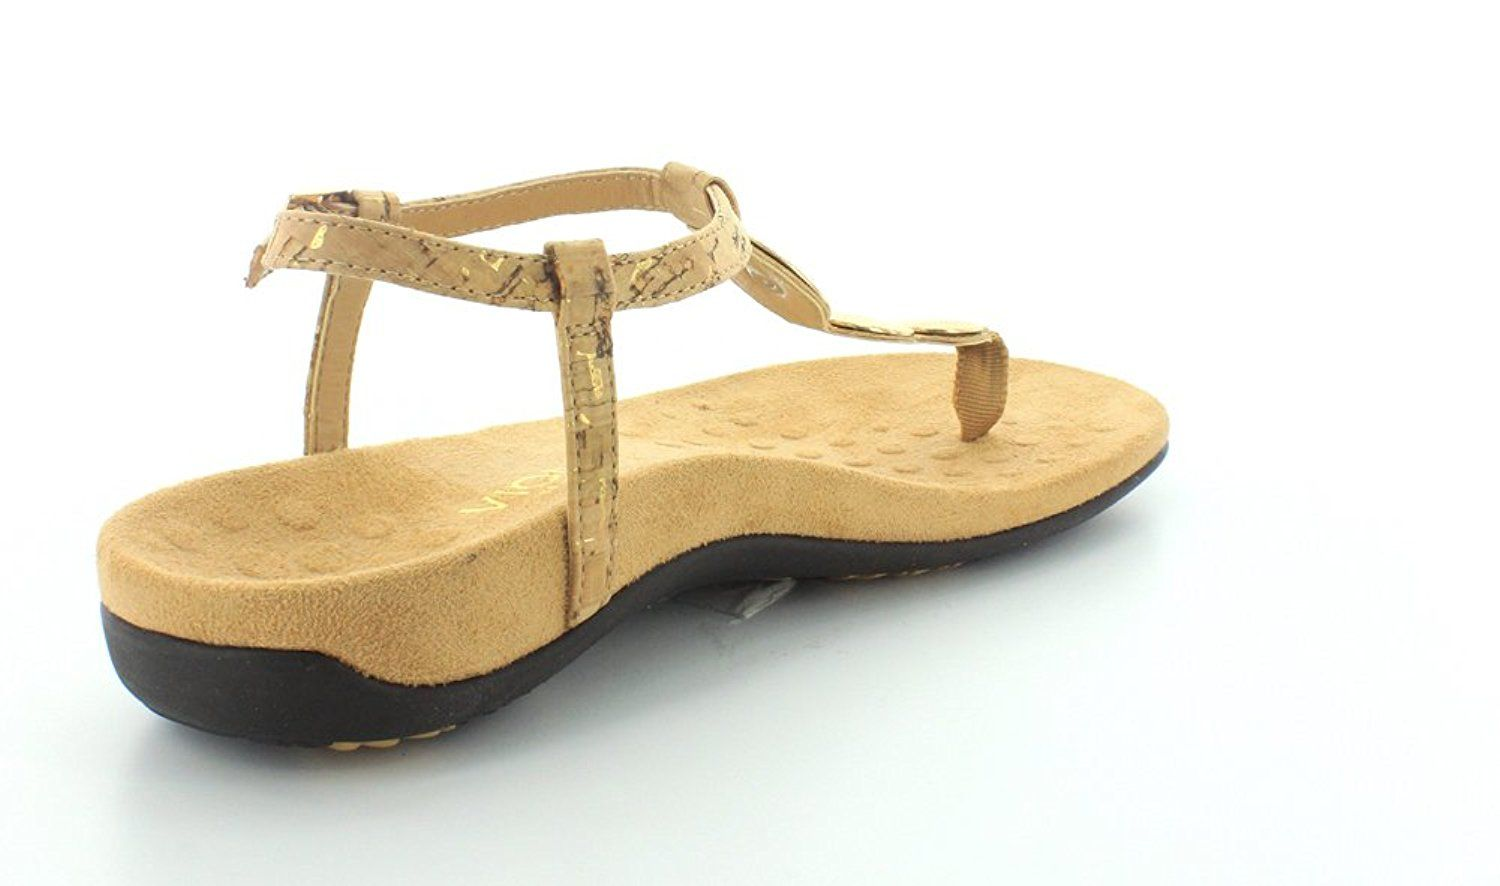 57aac793127e Vionic Lizbeth Women s T-strap Orthotic Sandal -- Want additional info   Click on